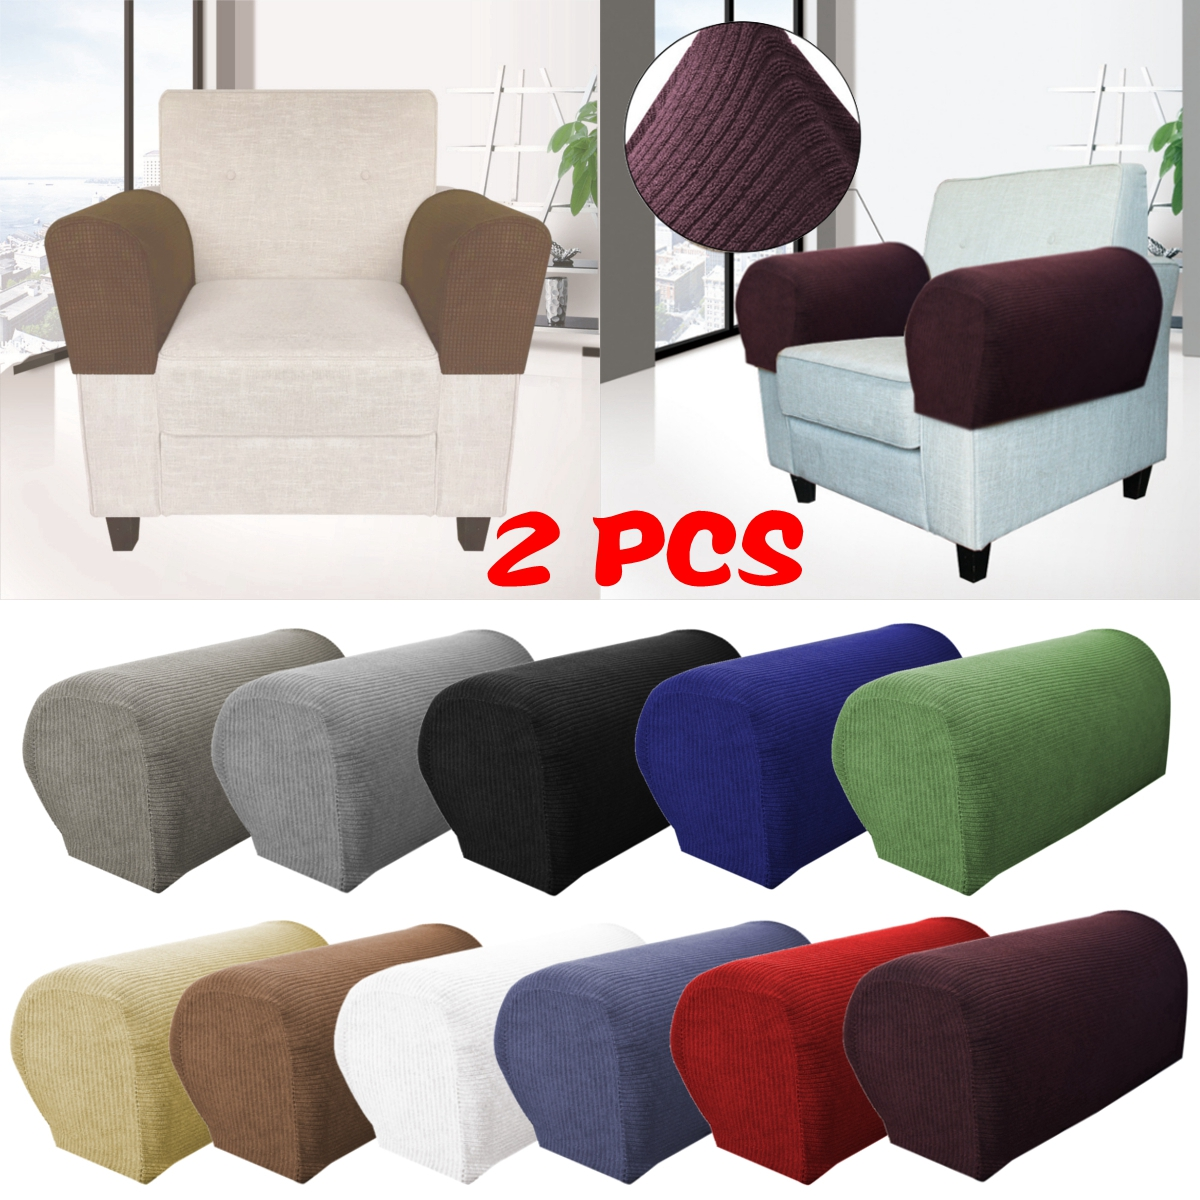 2Pcs Premium Armrest Covers Stretchy Chair Sofa Couch Arm Protector Stretch